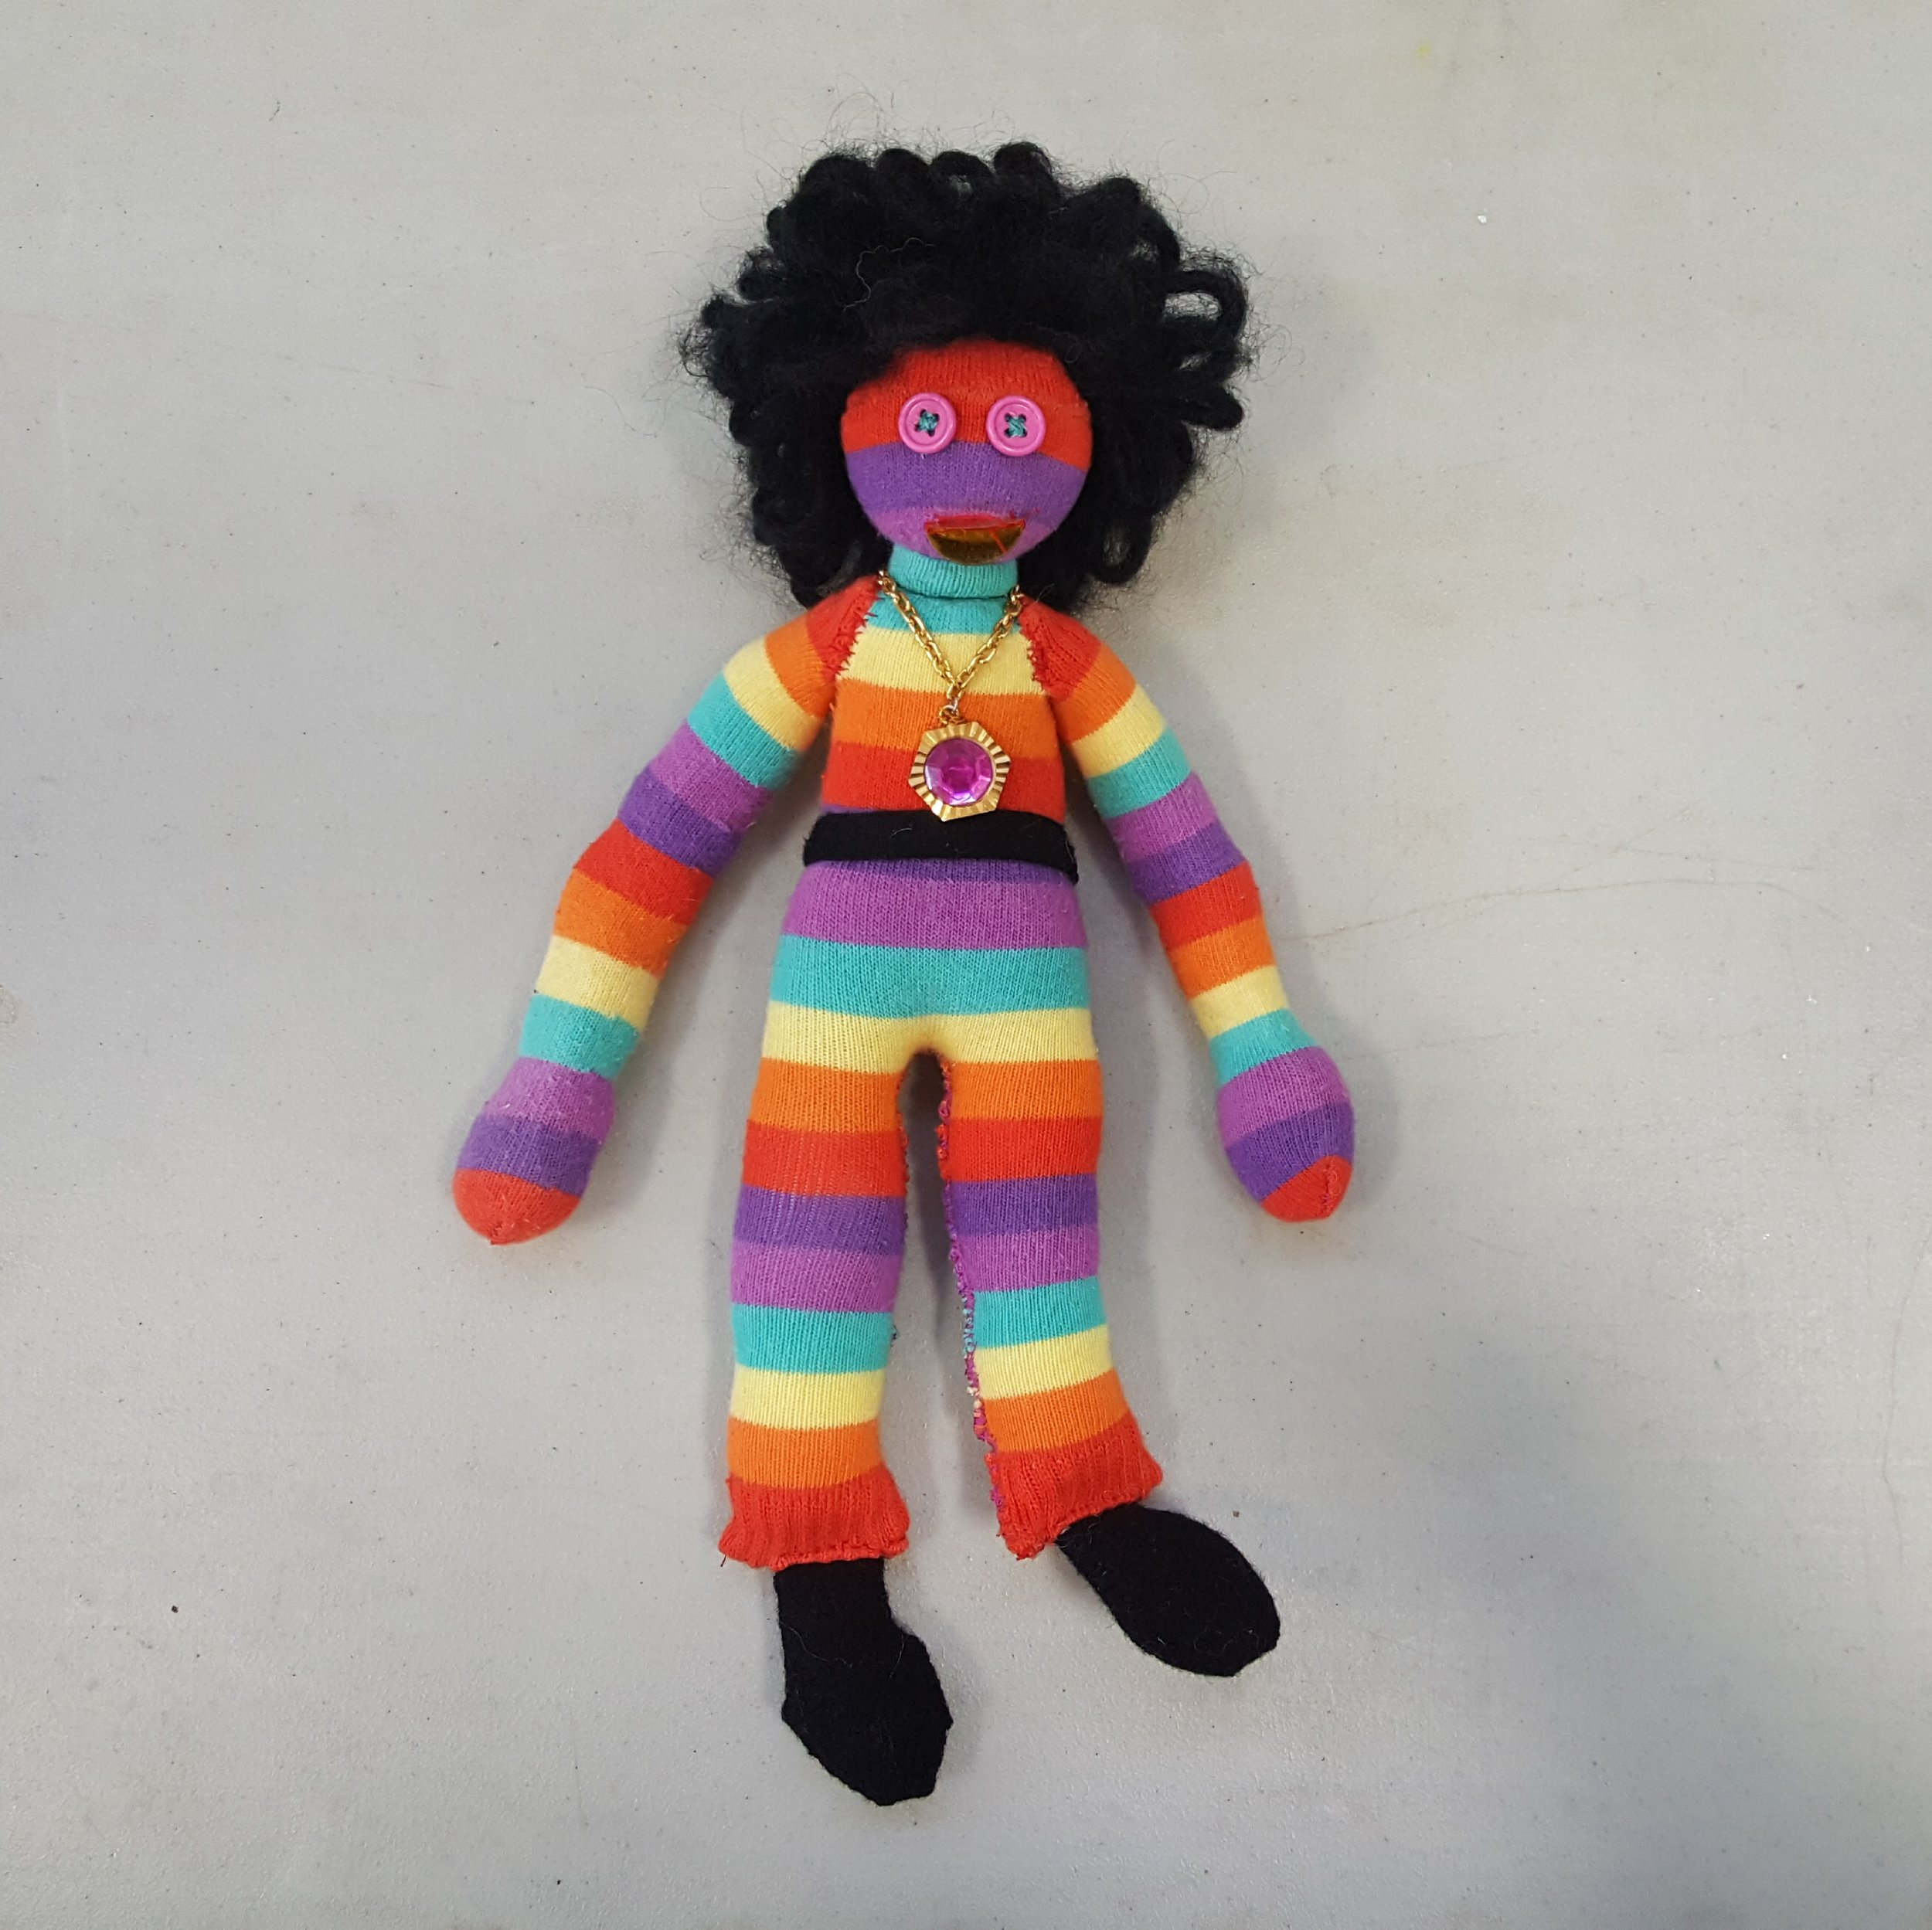 Disco Sly - I made this colourful character as a raffle prize for the TREATS & TREASURES craft fair.